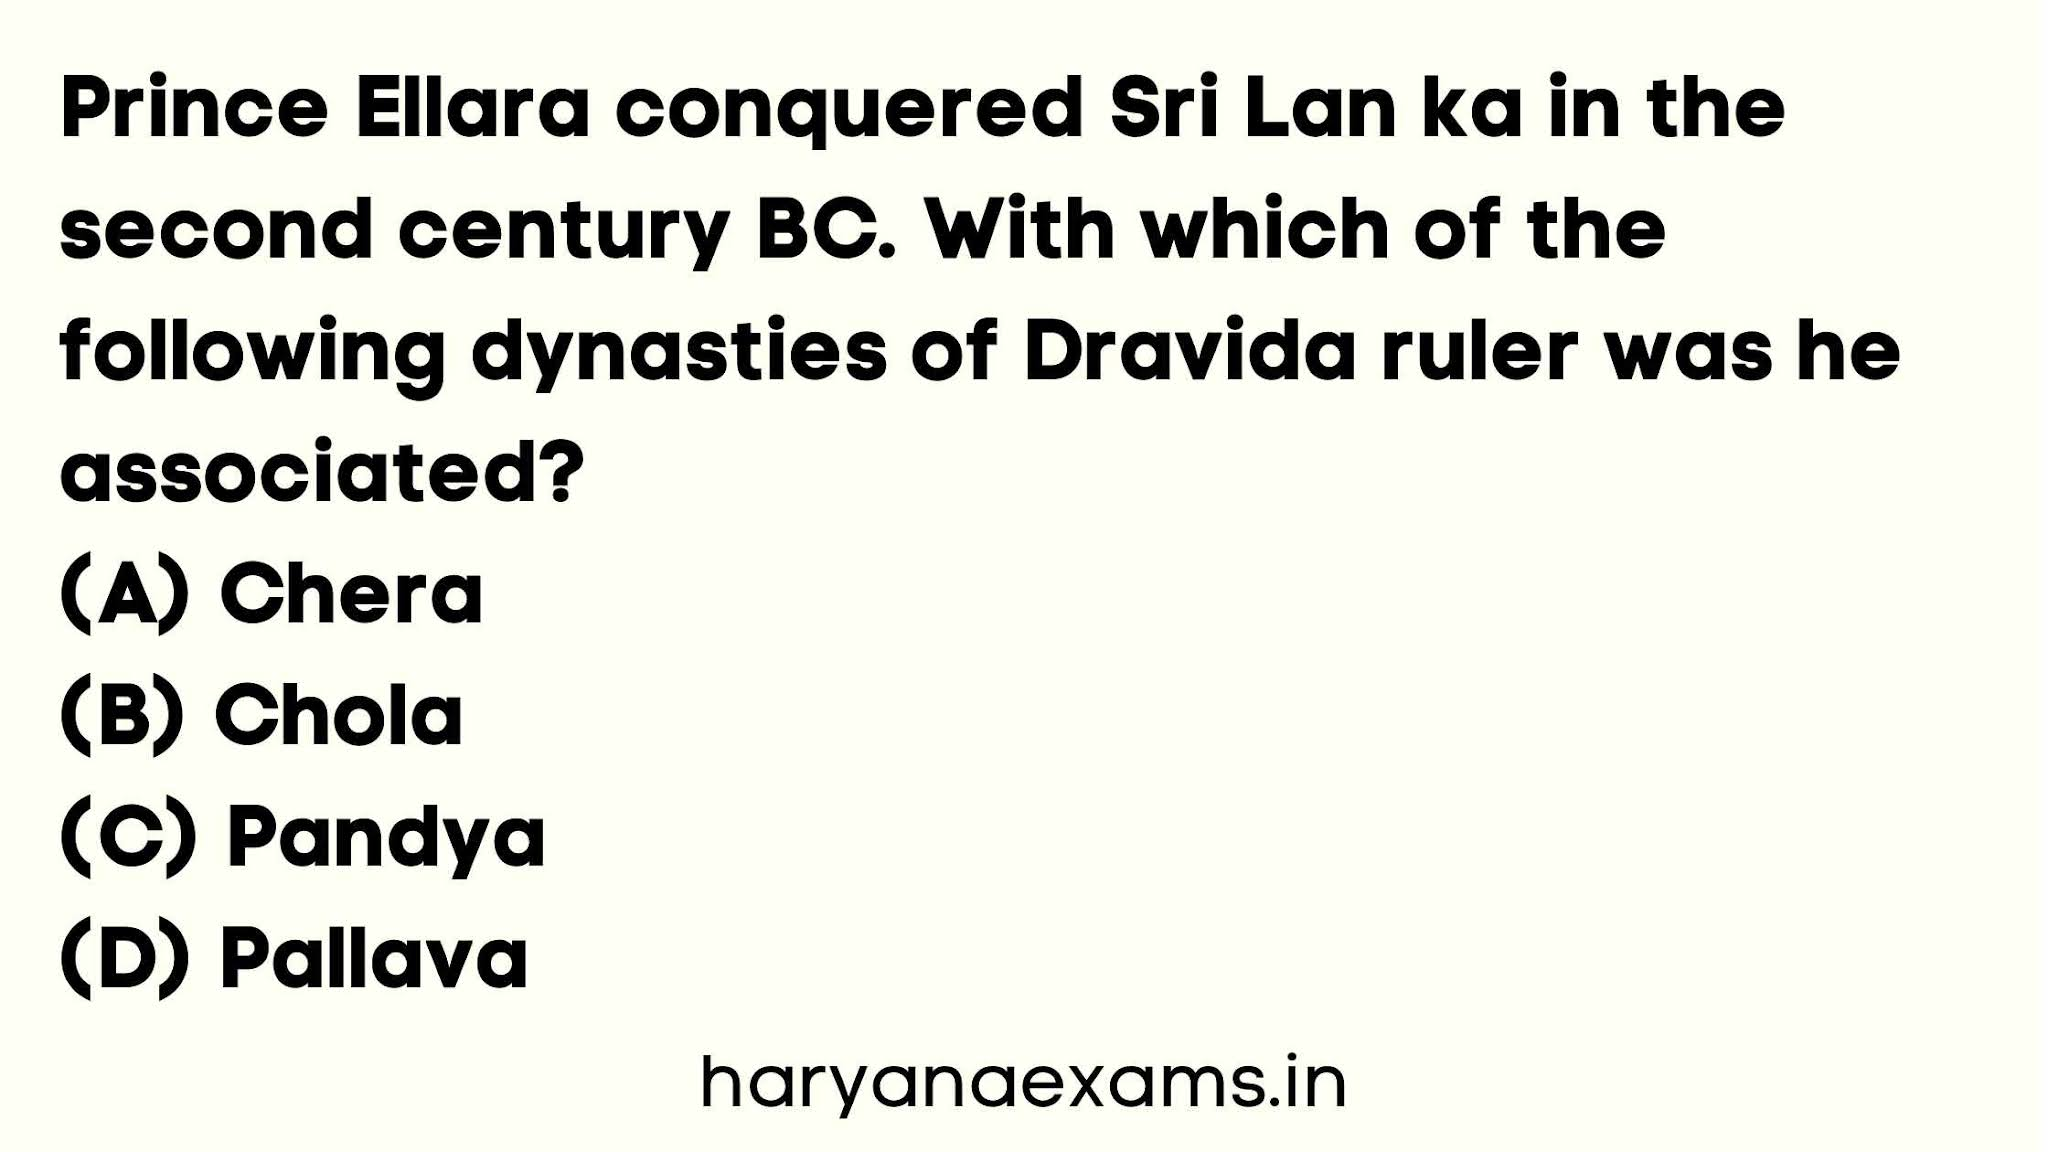 Prince Ellara conquered Sri Lan ka in the second century BC. With which of the following dynasties of Dravida ruler was he associated?   (A) Chera   (B) Chola   (C) Pandya   (D) Pallava